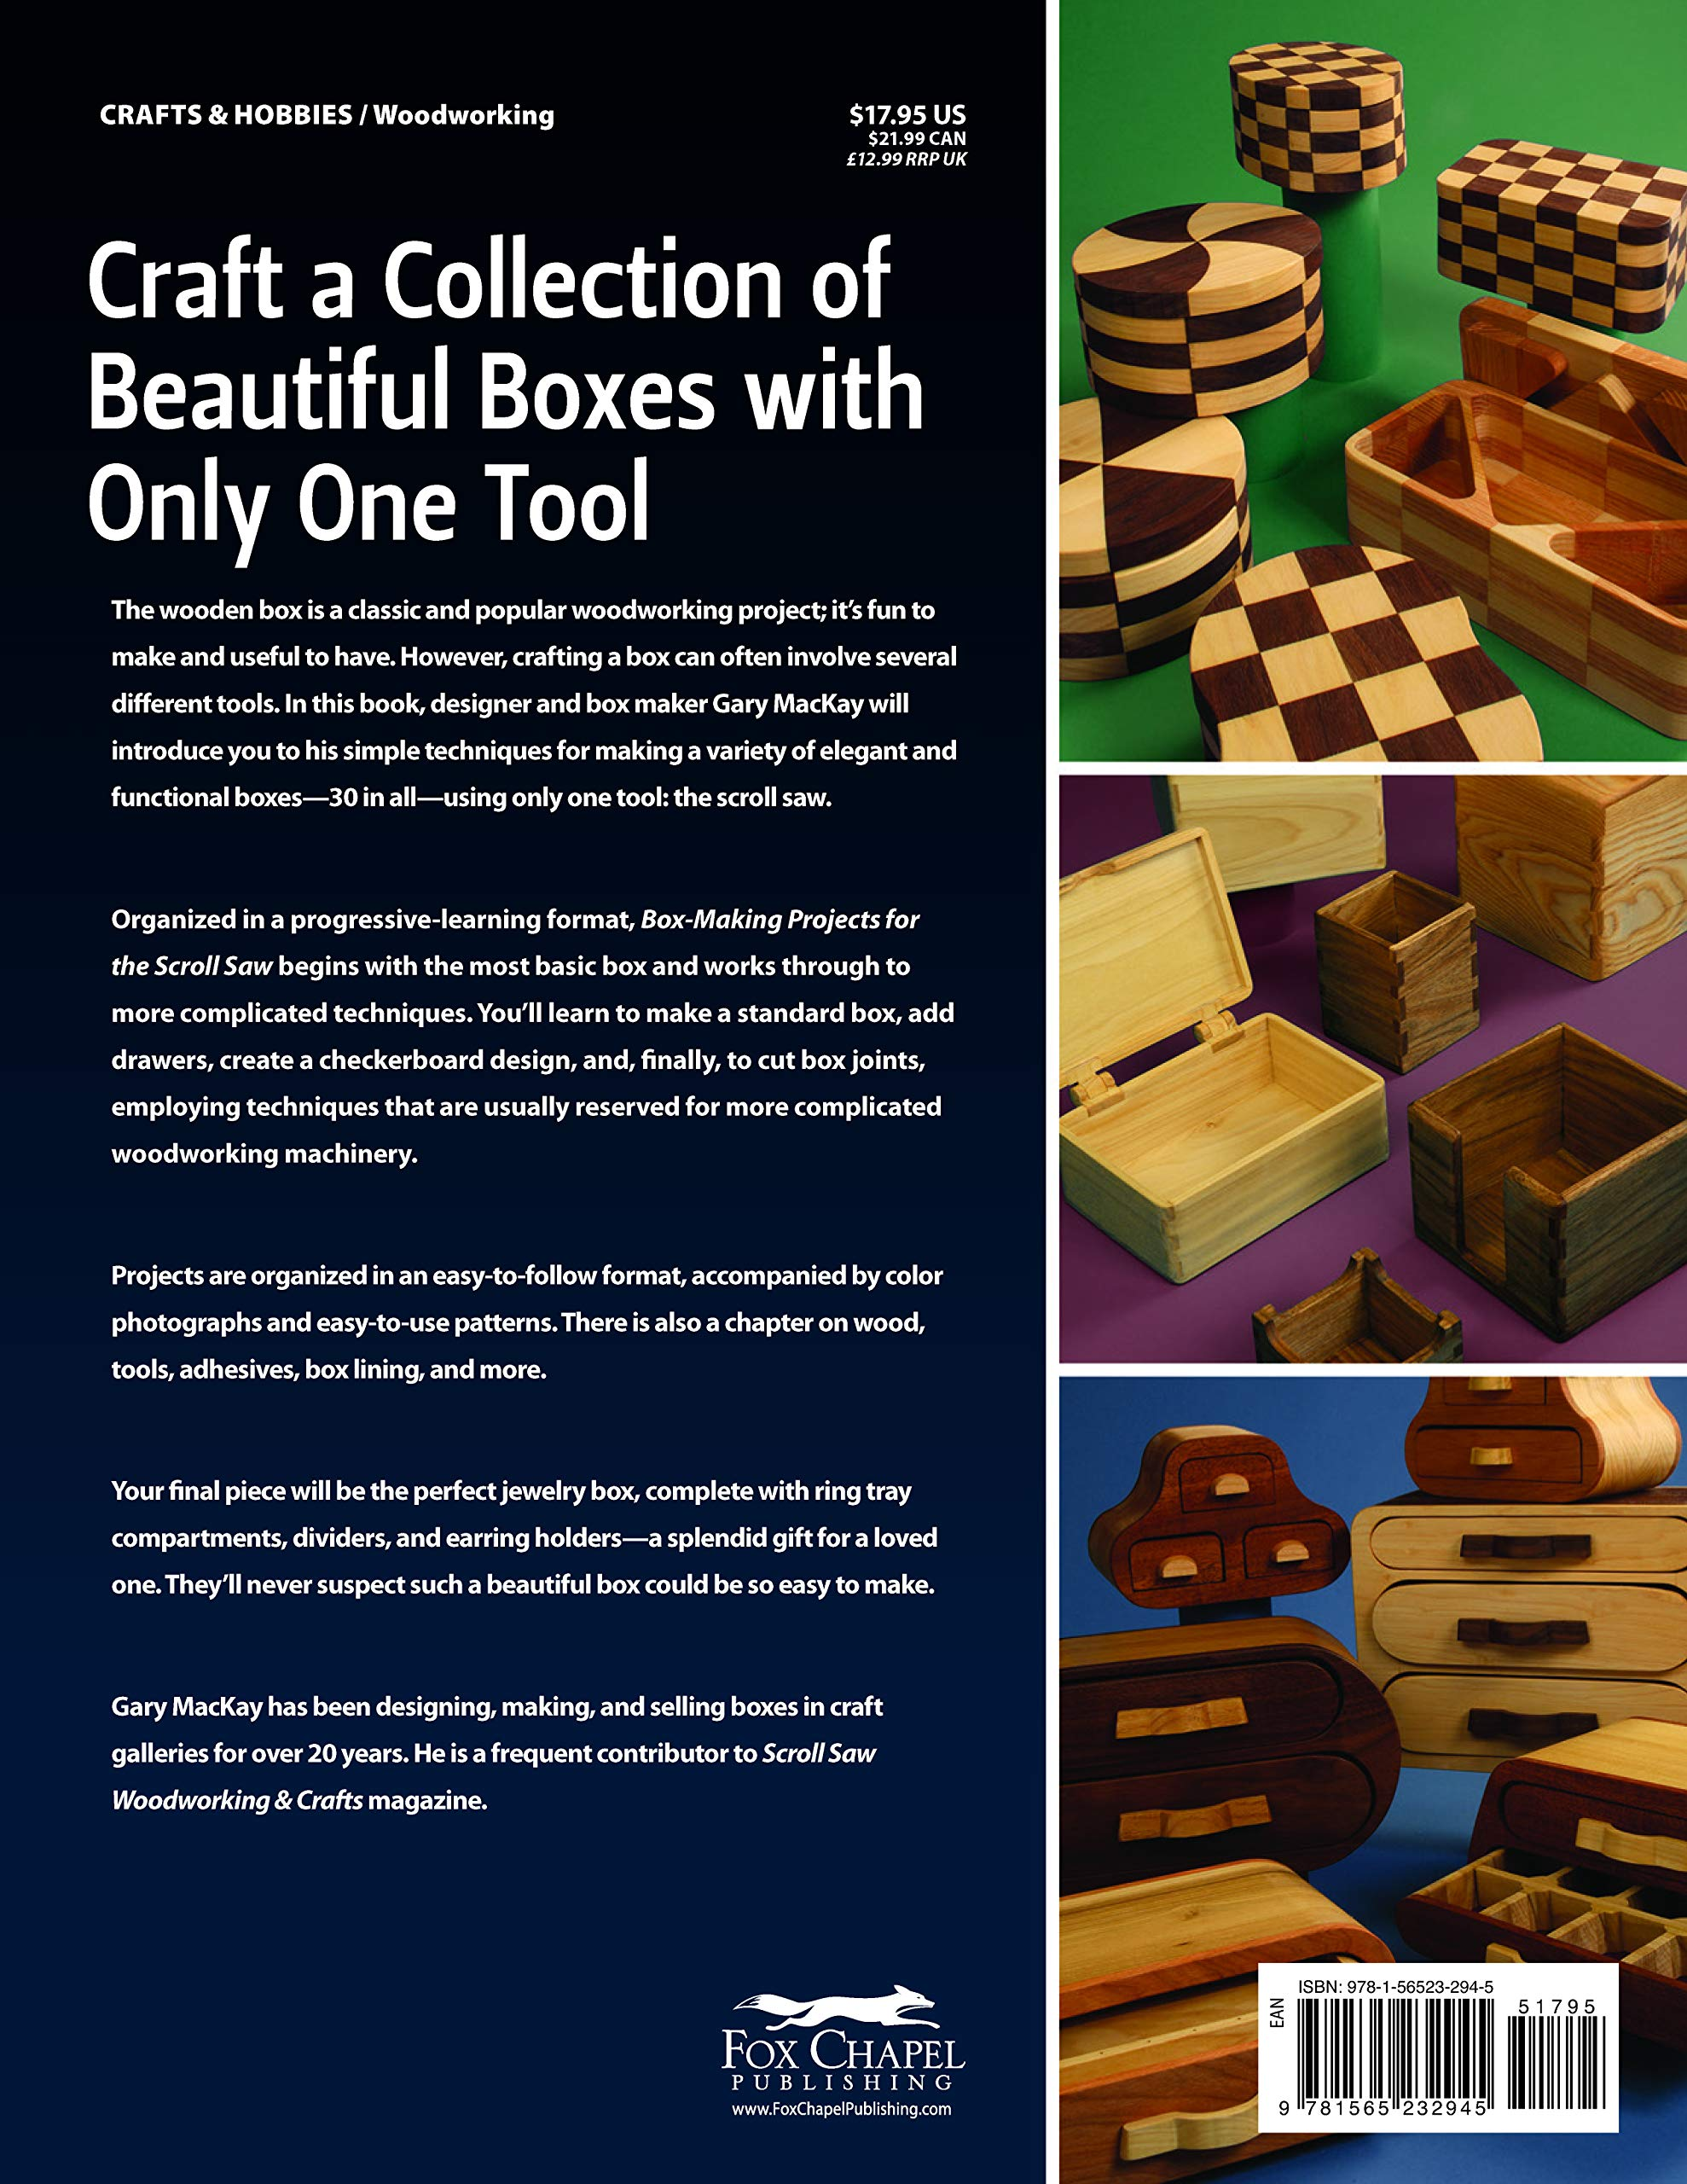 Jual Box Making Projects For The Scroll Saw 30 Woodworking Projects